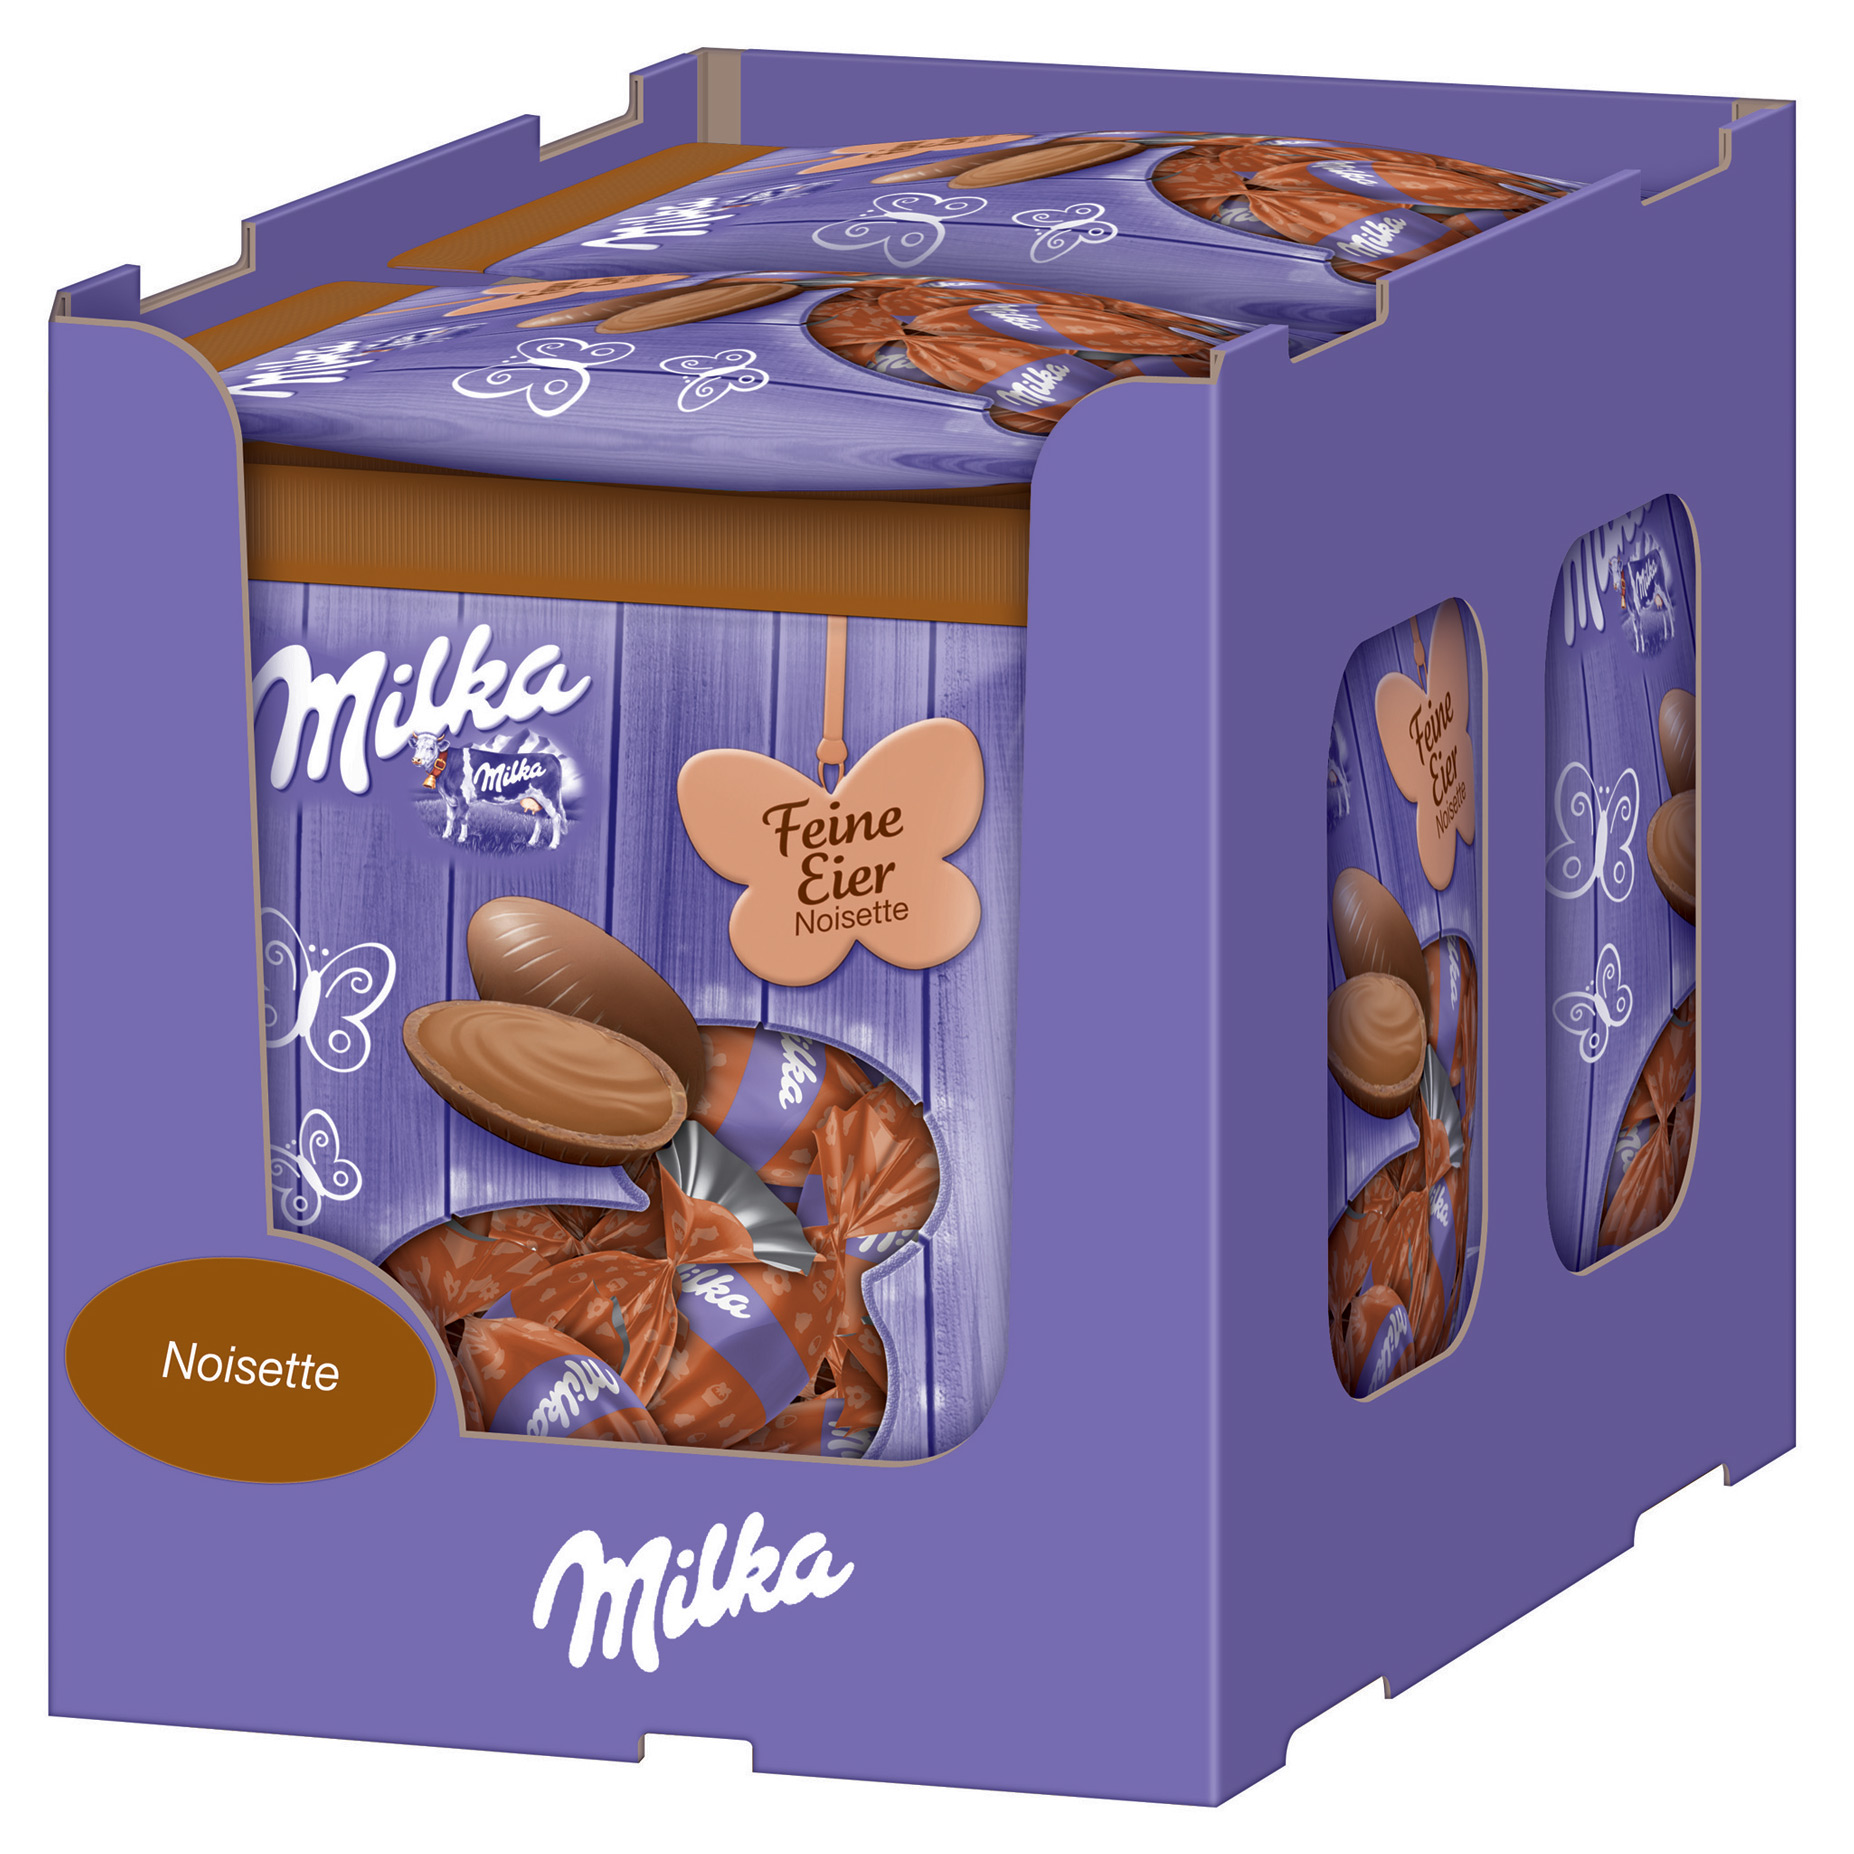 milka feine eier noisette online kaufen im world of sweets shop. Black Bedroom Furniture Sets. Home Design Ideas